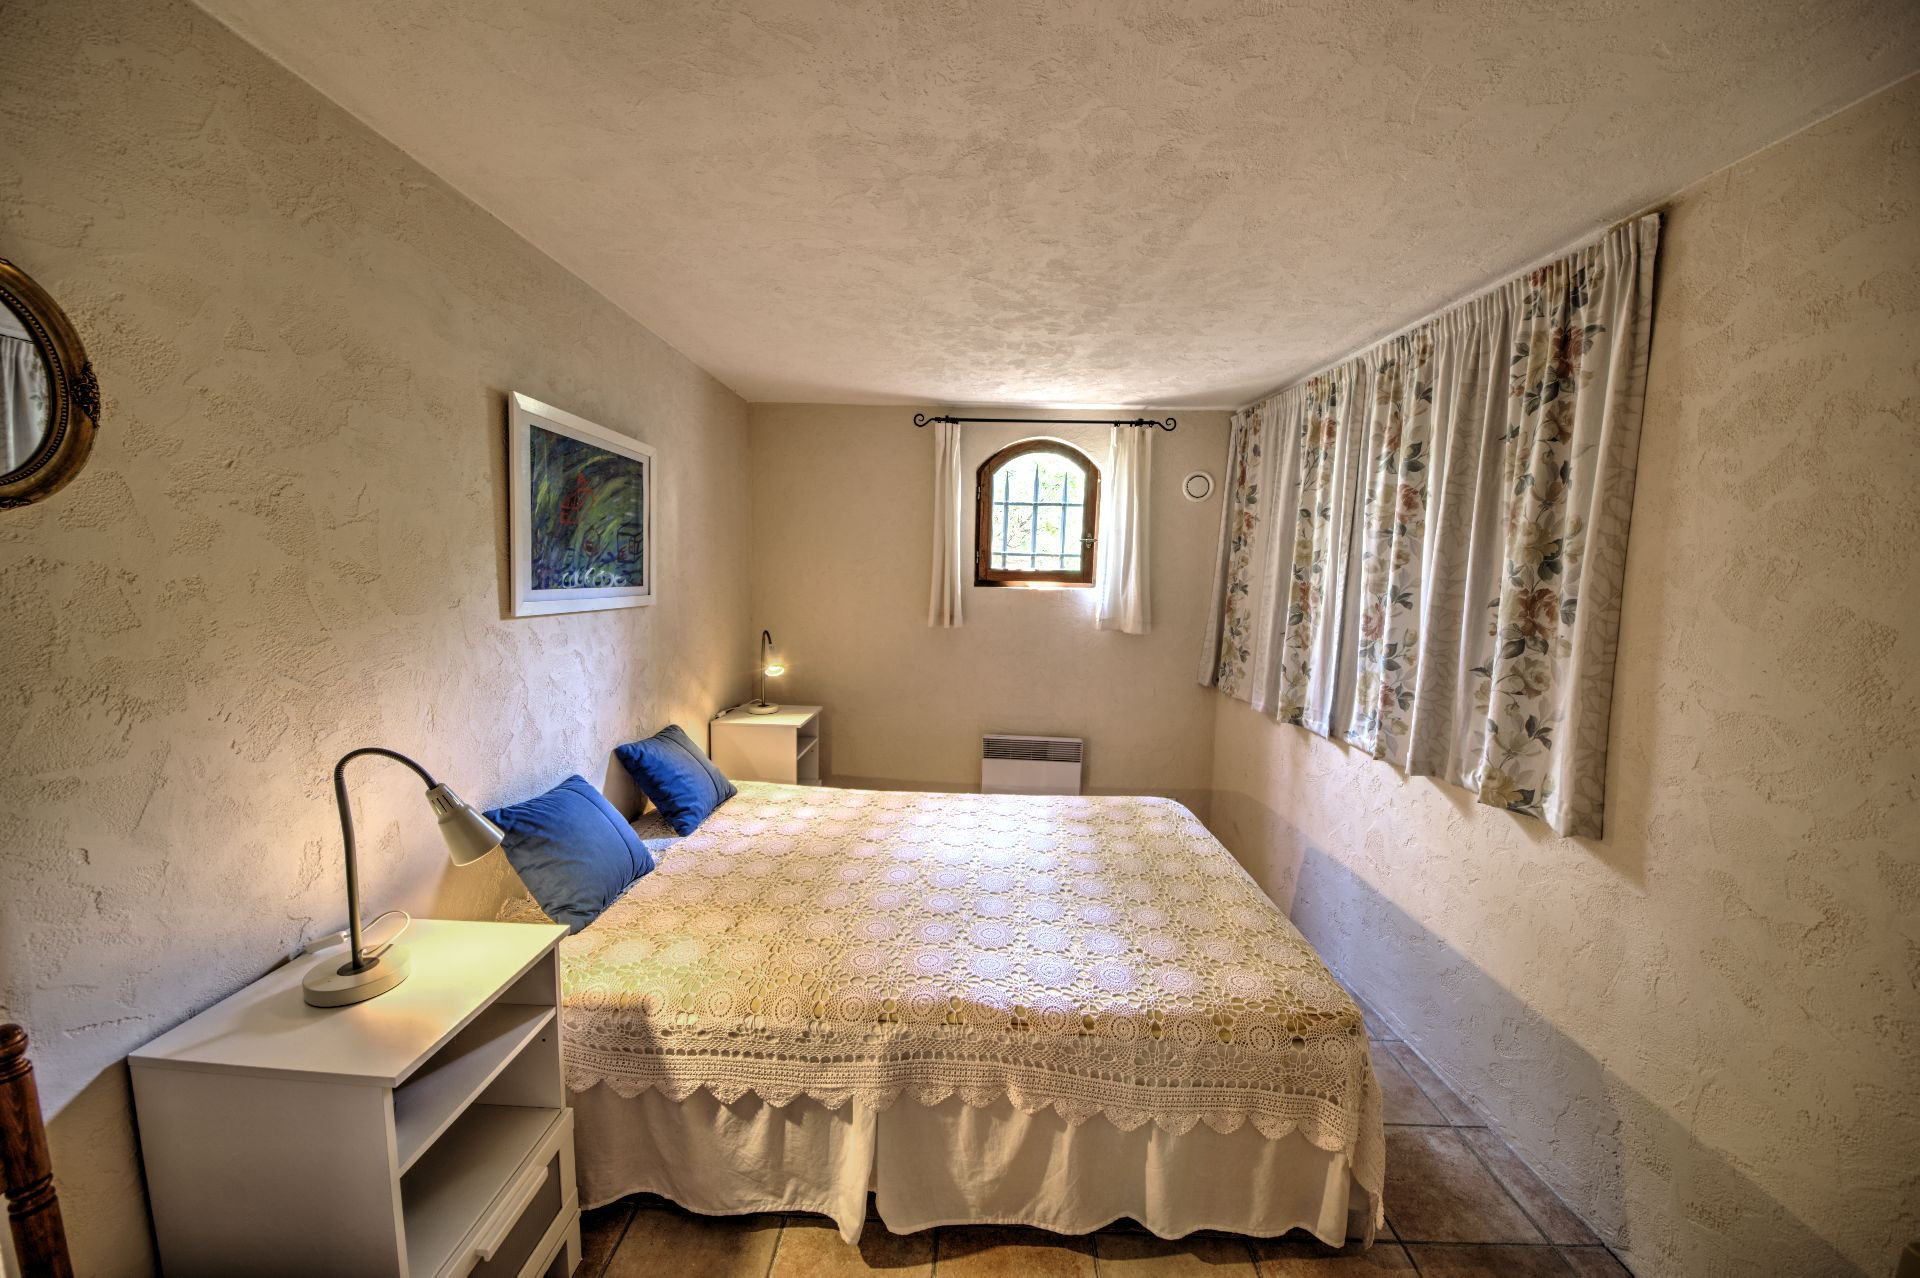 bedroom ground garden Beautiful villa of 180 sqm, three bedrooms, swimming pool, on 4000 m² closed, Tourtour, Var, Provence